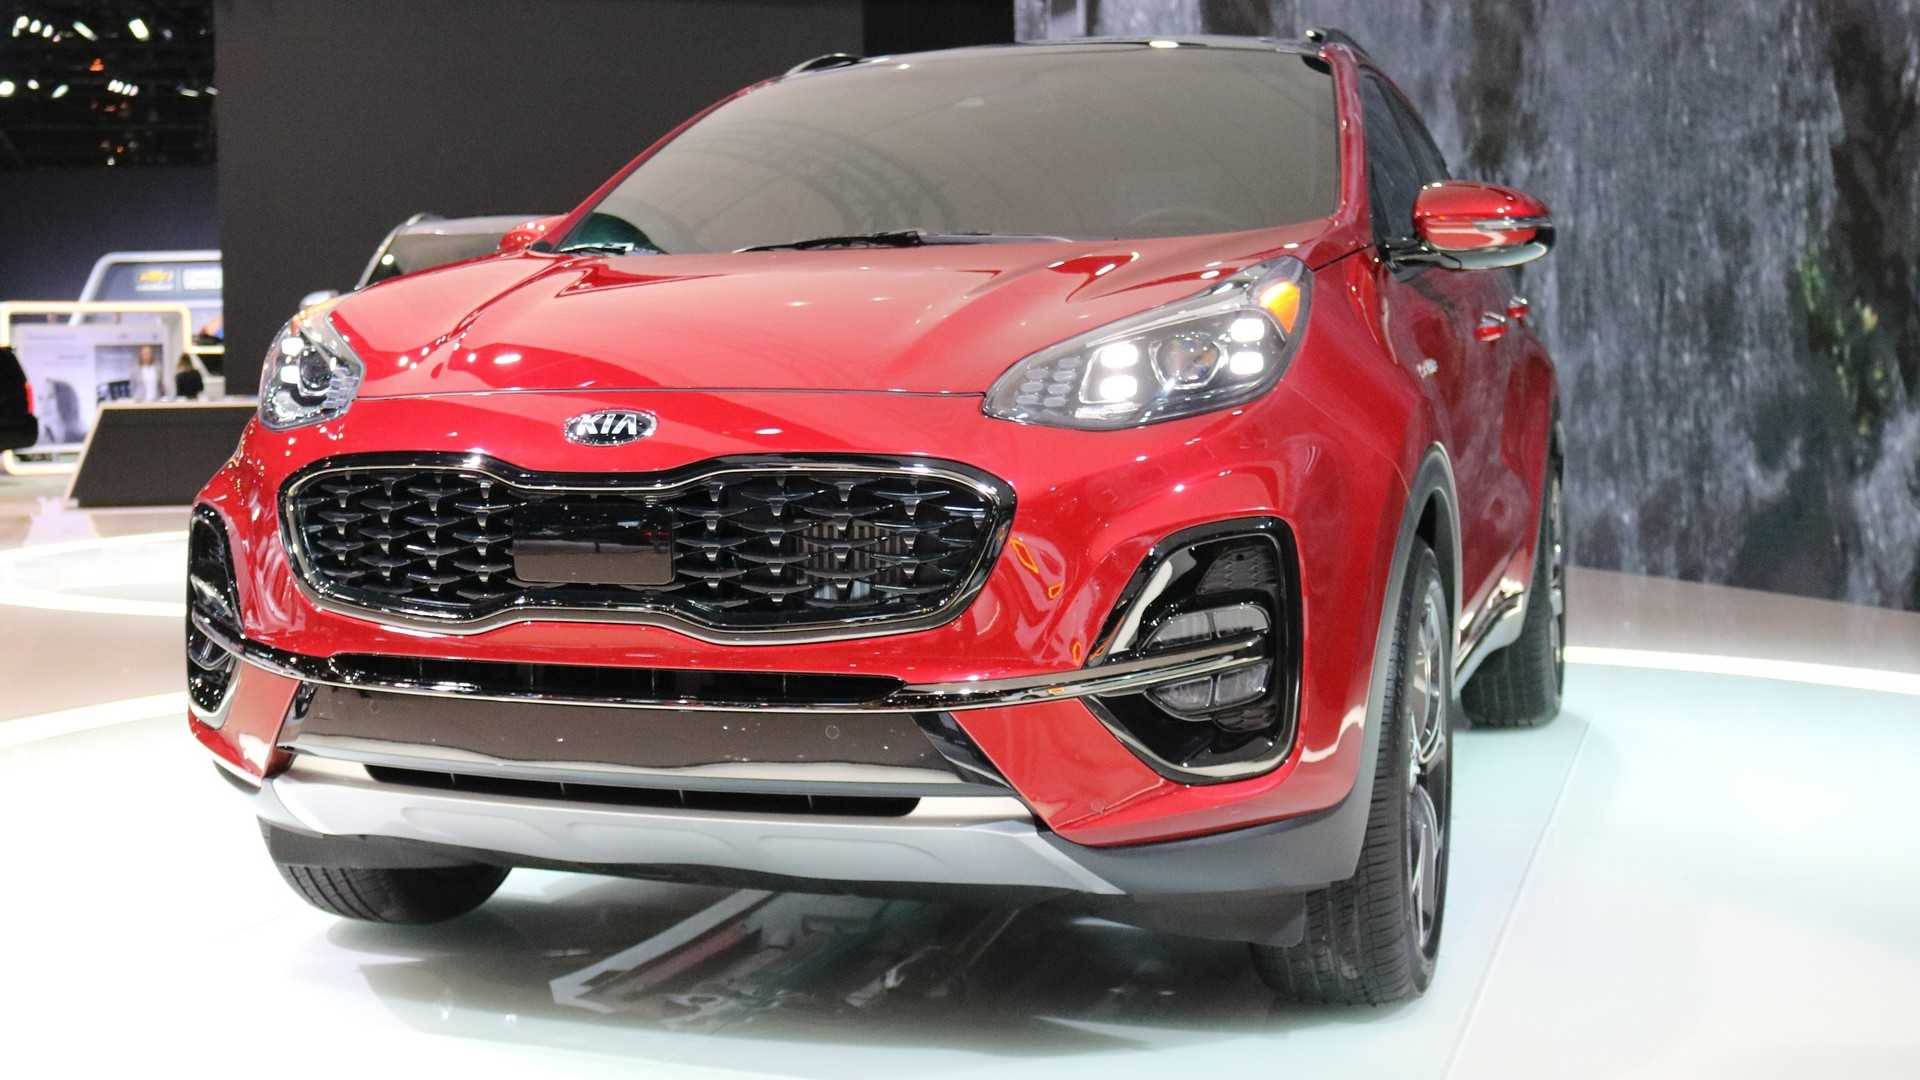 85 New Kia New Models 2020 Spesification